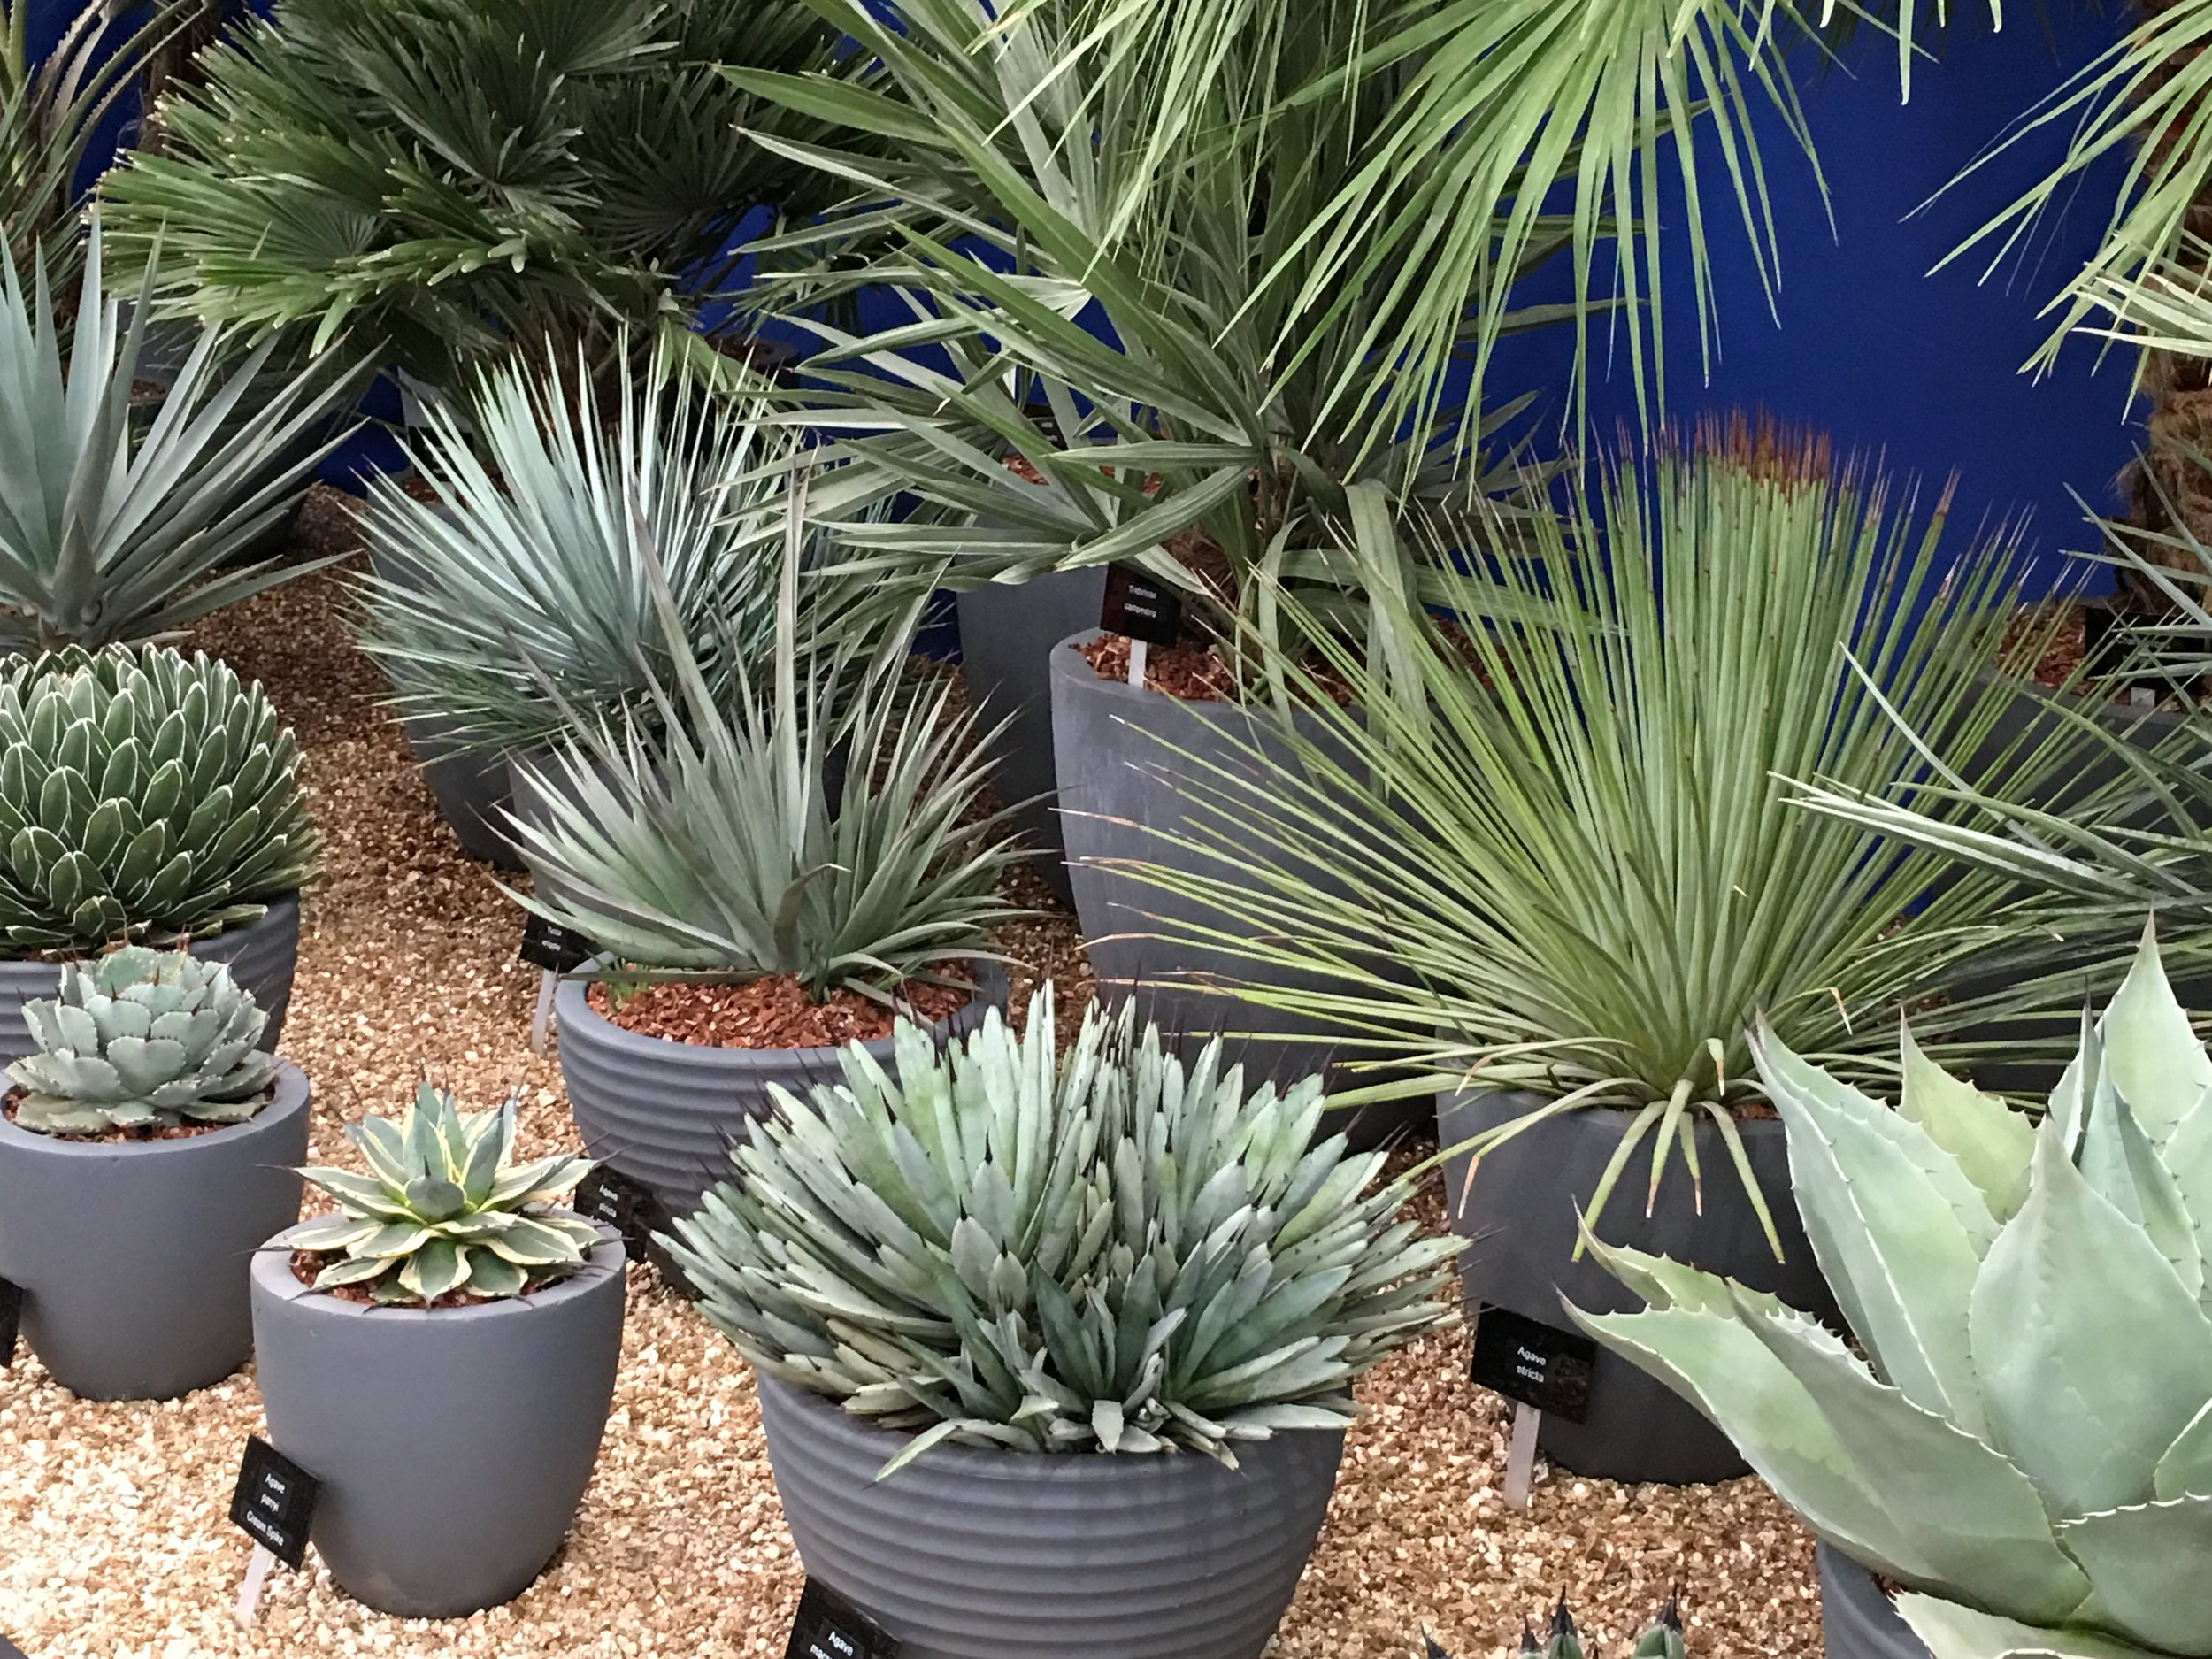 From cacti to succulents, indoor houseplants are still a key trend.